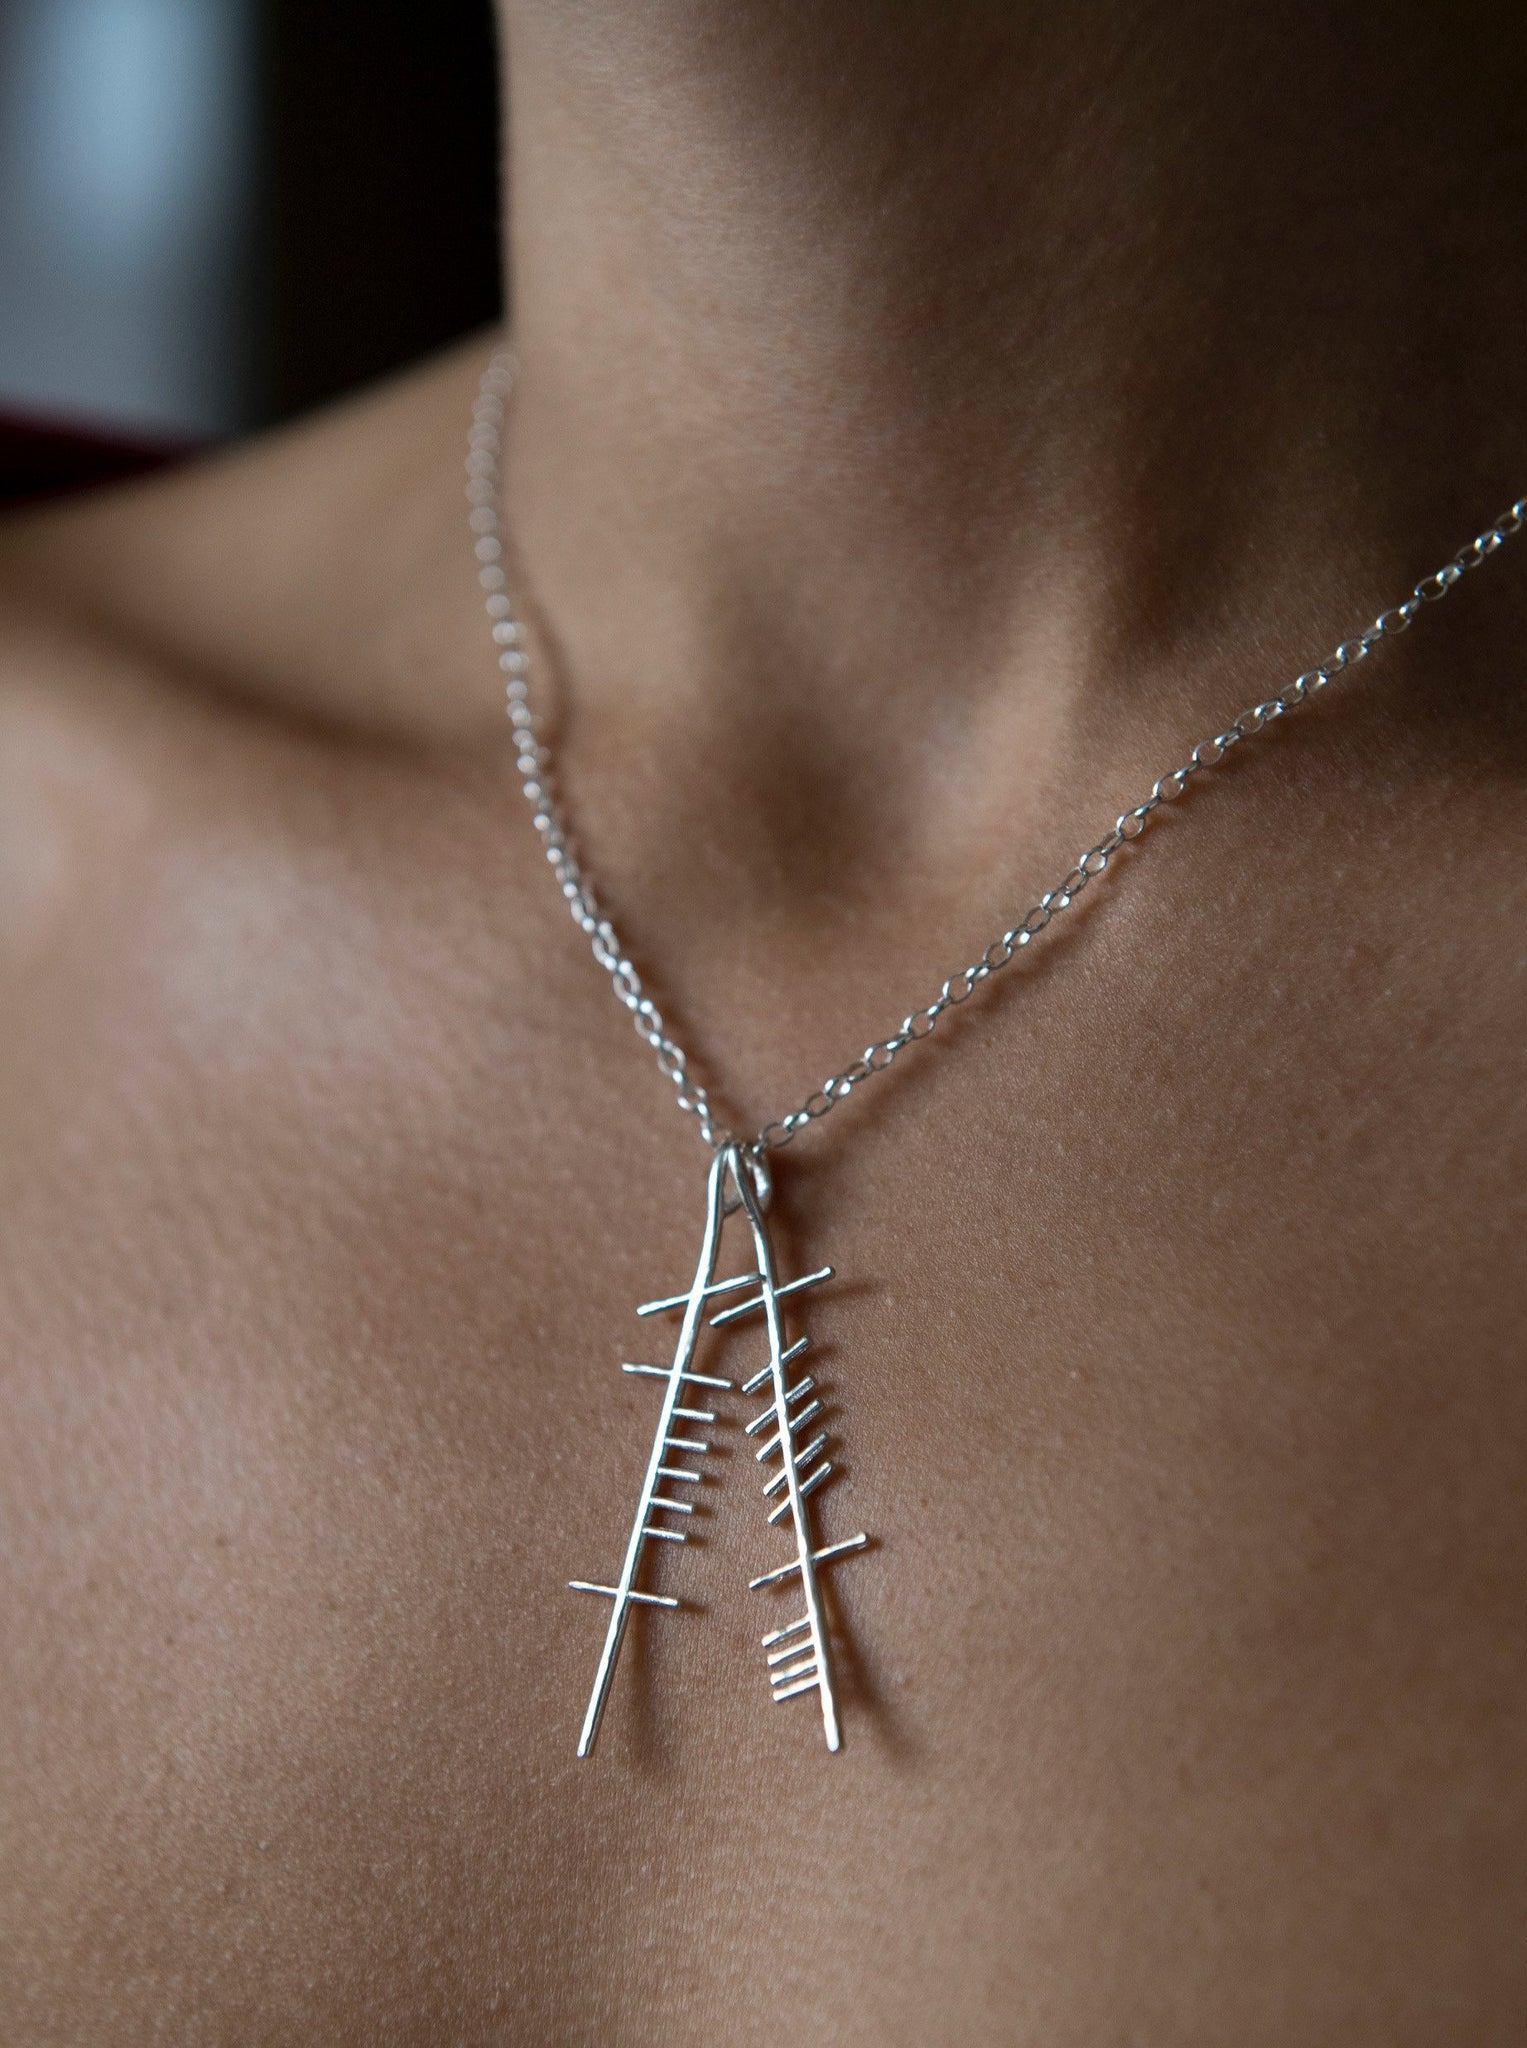 anam cara necklace -Ogham Treasure.com